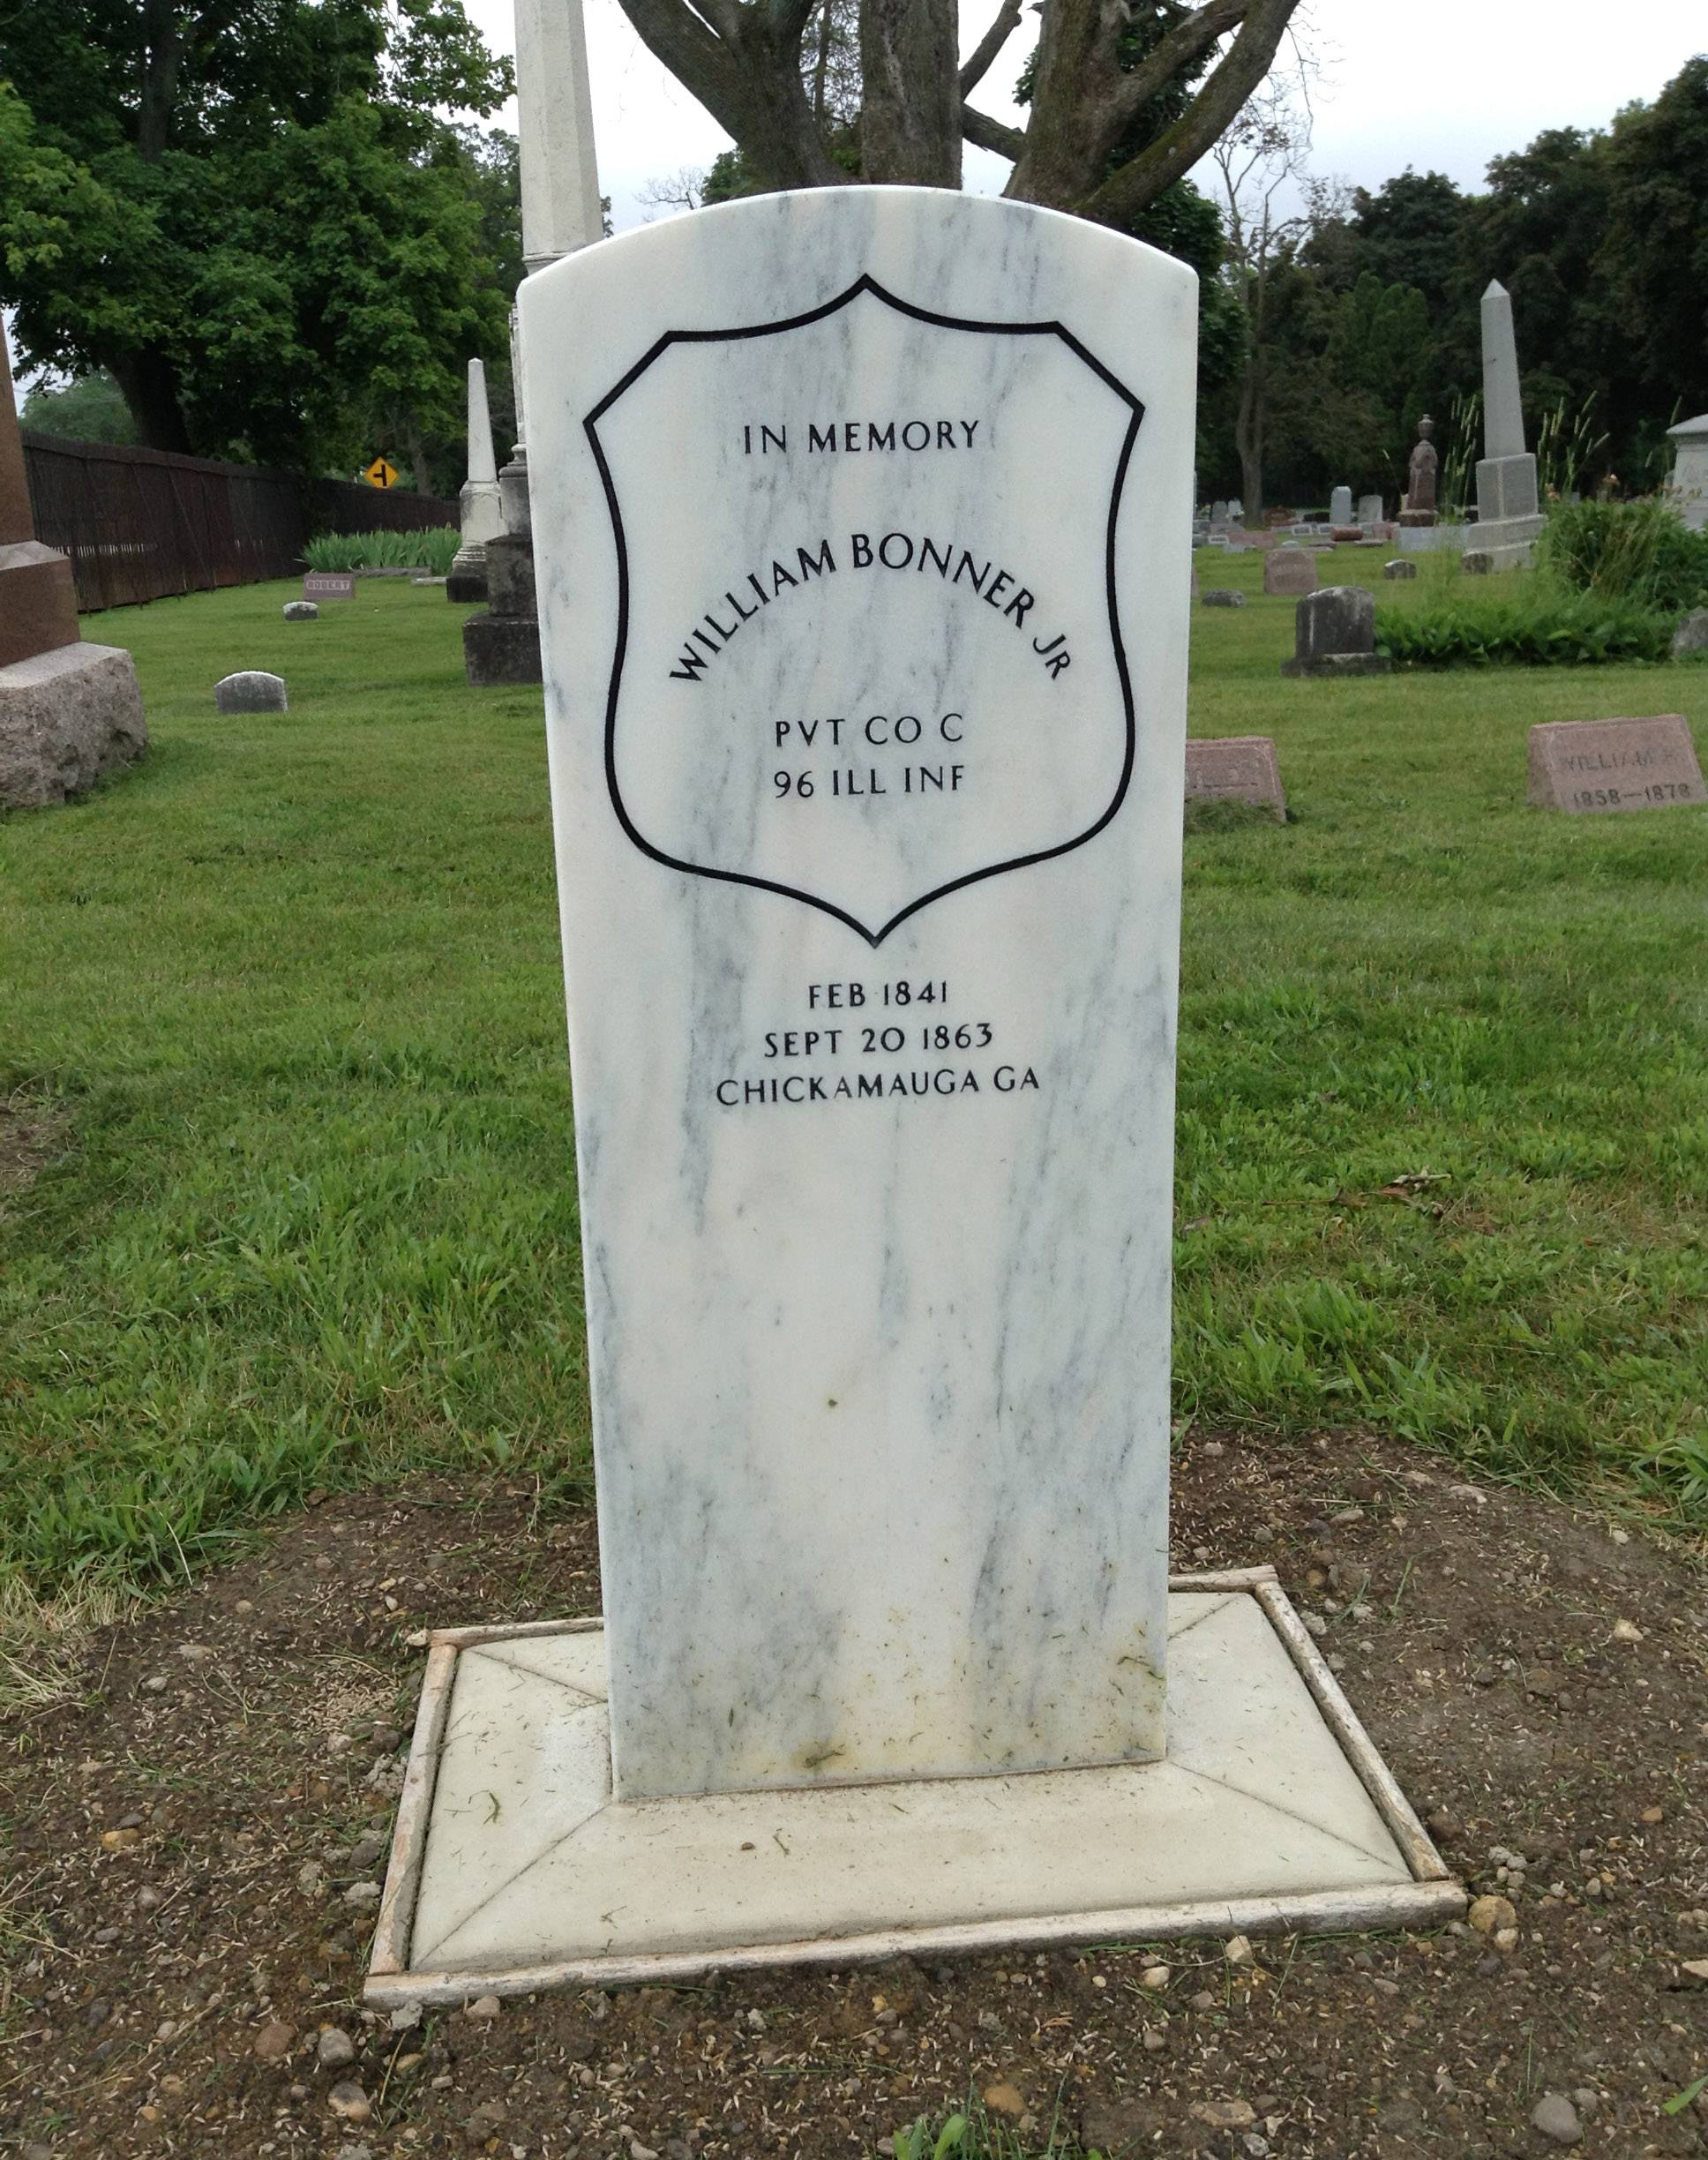 The gravestone for Civil War soldier William Bonner Jr. at Millburn Cemetery in Lake County. A ceremony will be held July 13 welcoming home Bonner, who was killed at the Battle of Chickamauga in 1863.